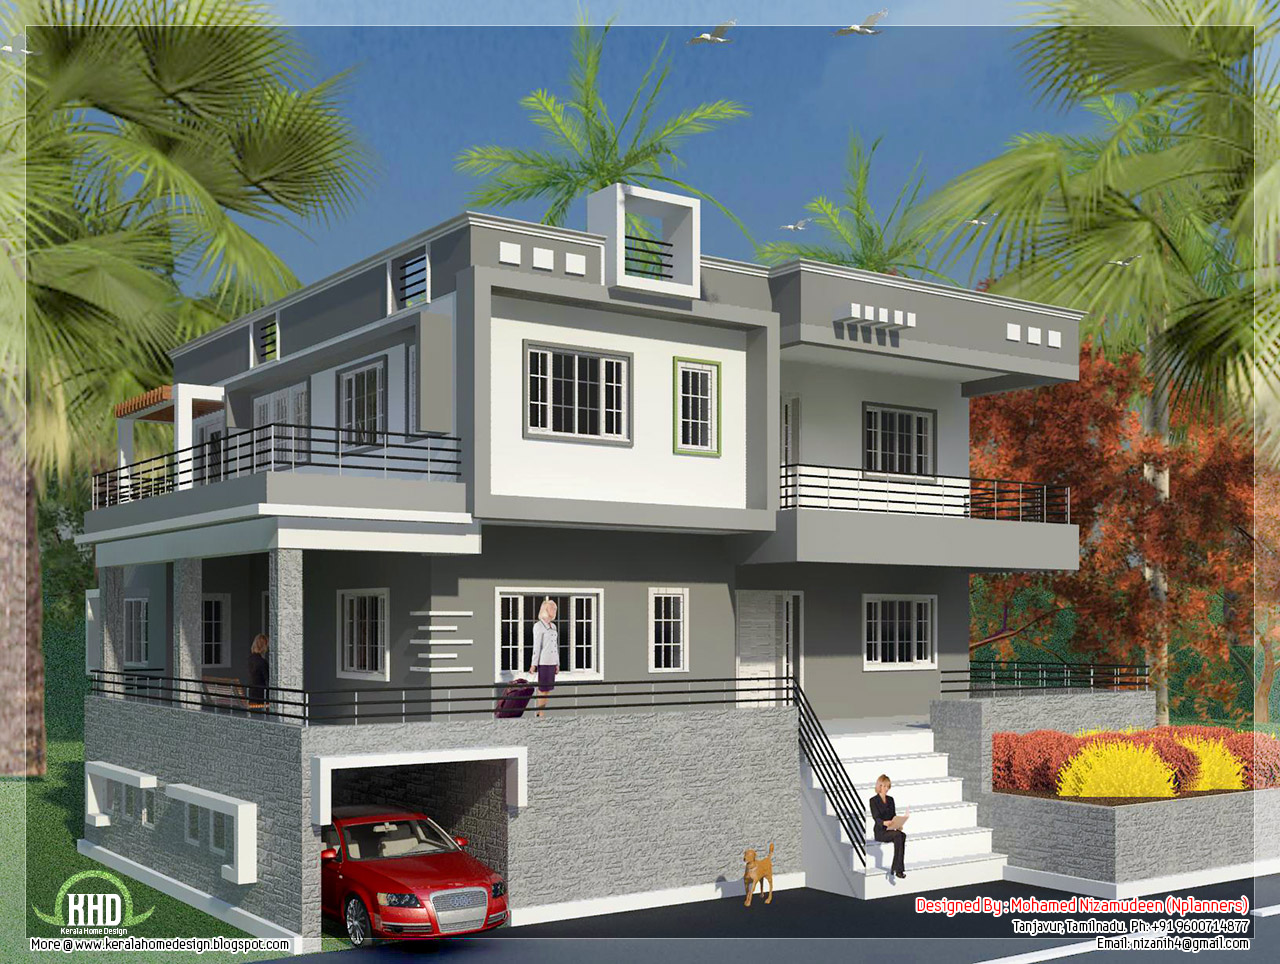 North indian style minimalist house exterior design for Exterior house designs indian style